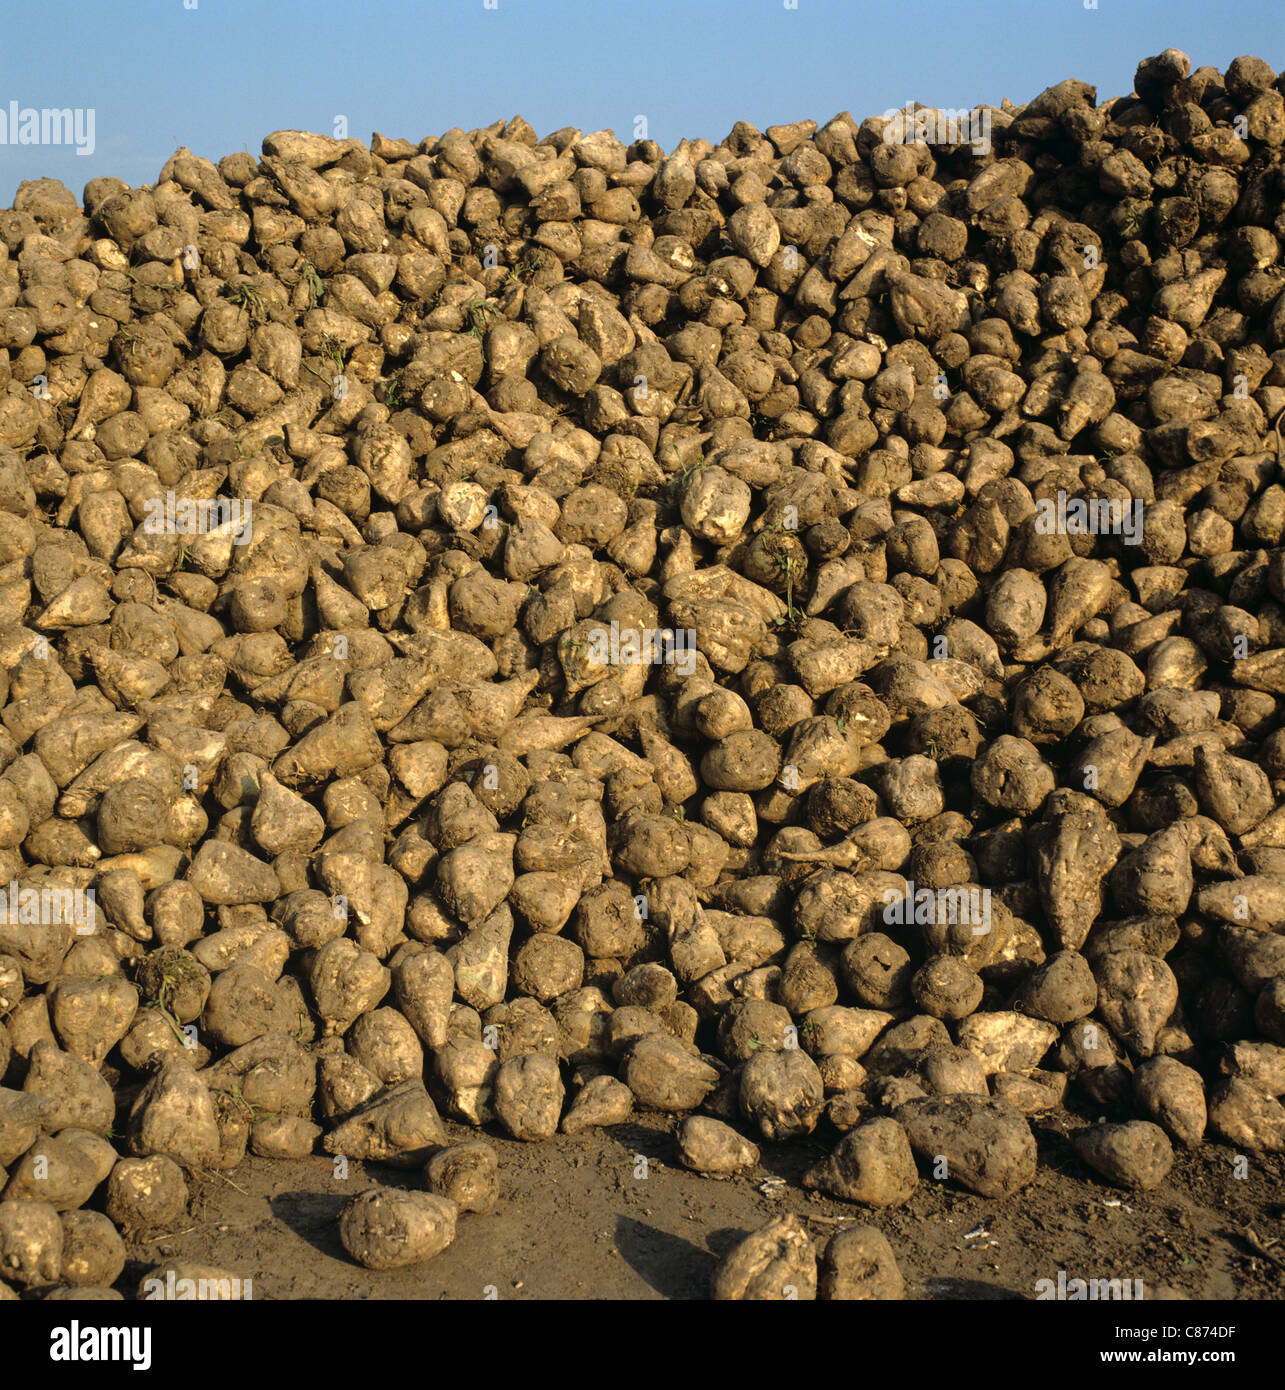 Pile of harvested sugar beet roots awaiting collection by sugar refinery - Stock Image